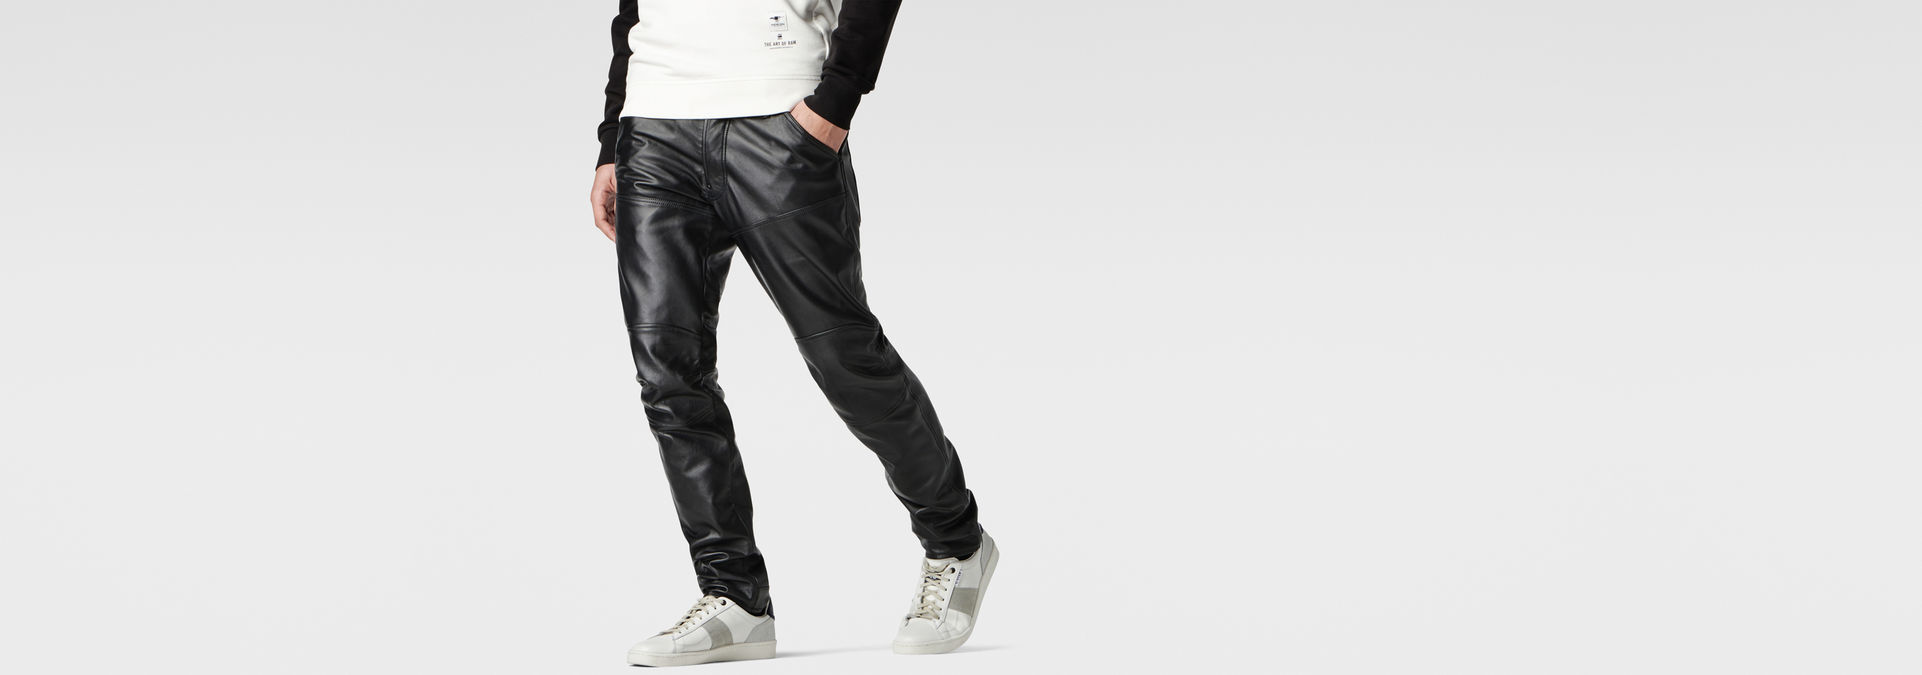 Leather 5620 3D Slim Pants | Black | Hommes | G Star RAW®